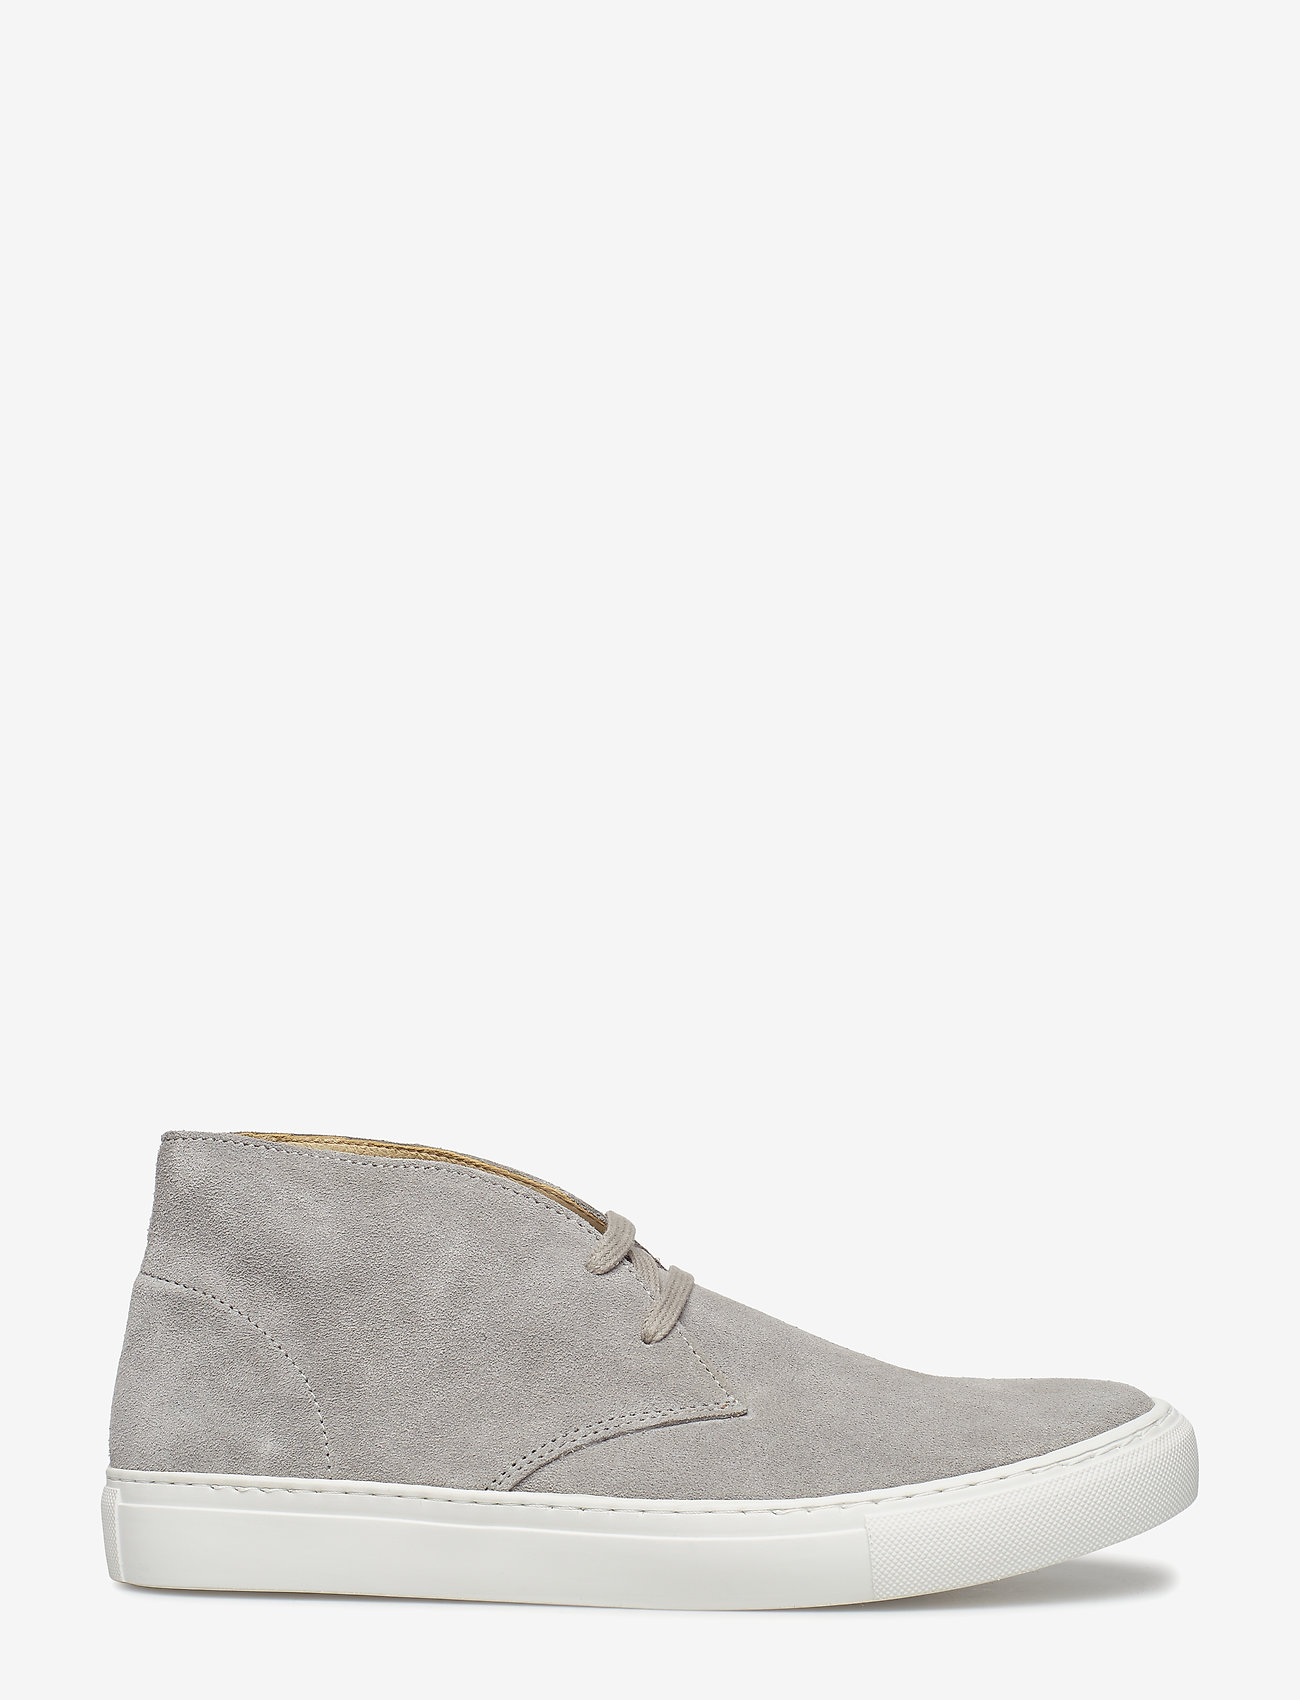 Shoe The Bear - LIAM S - desert boots - light grey - 1